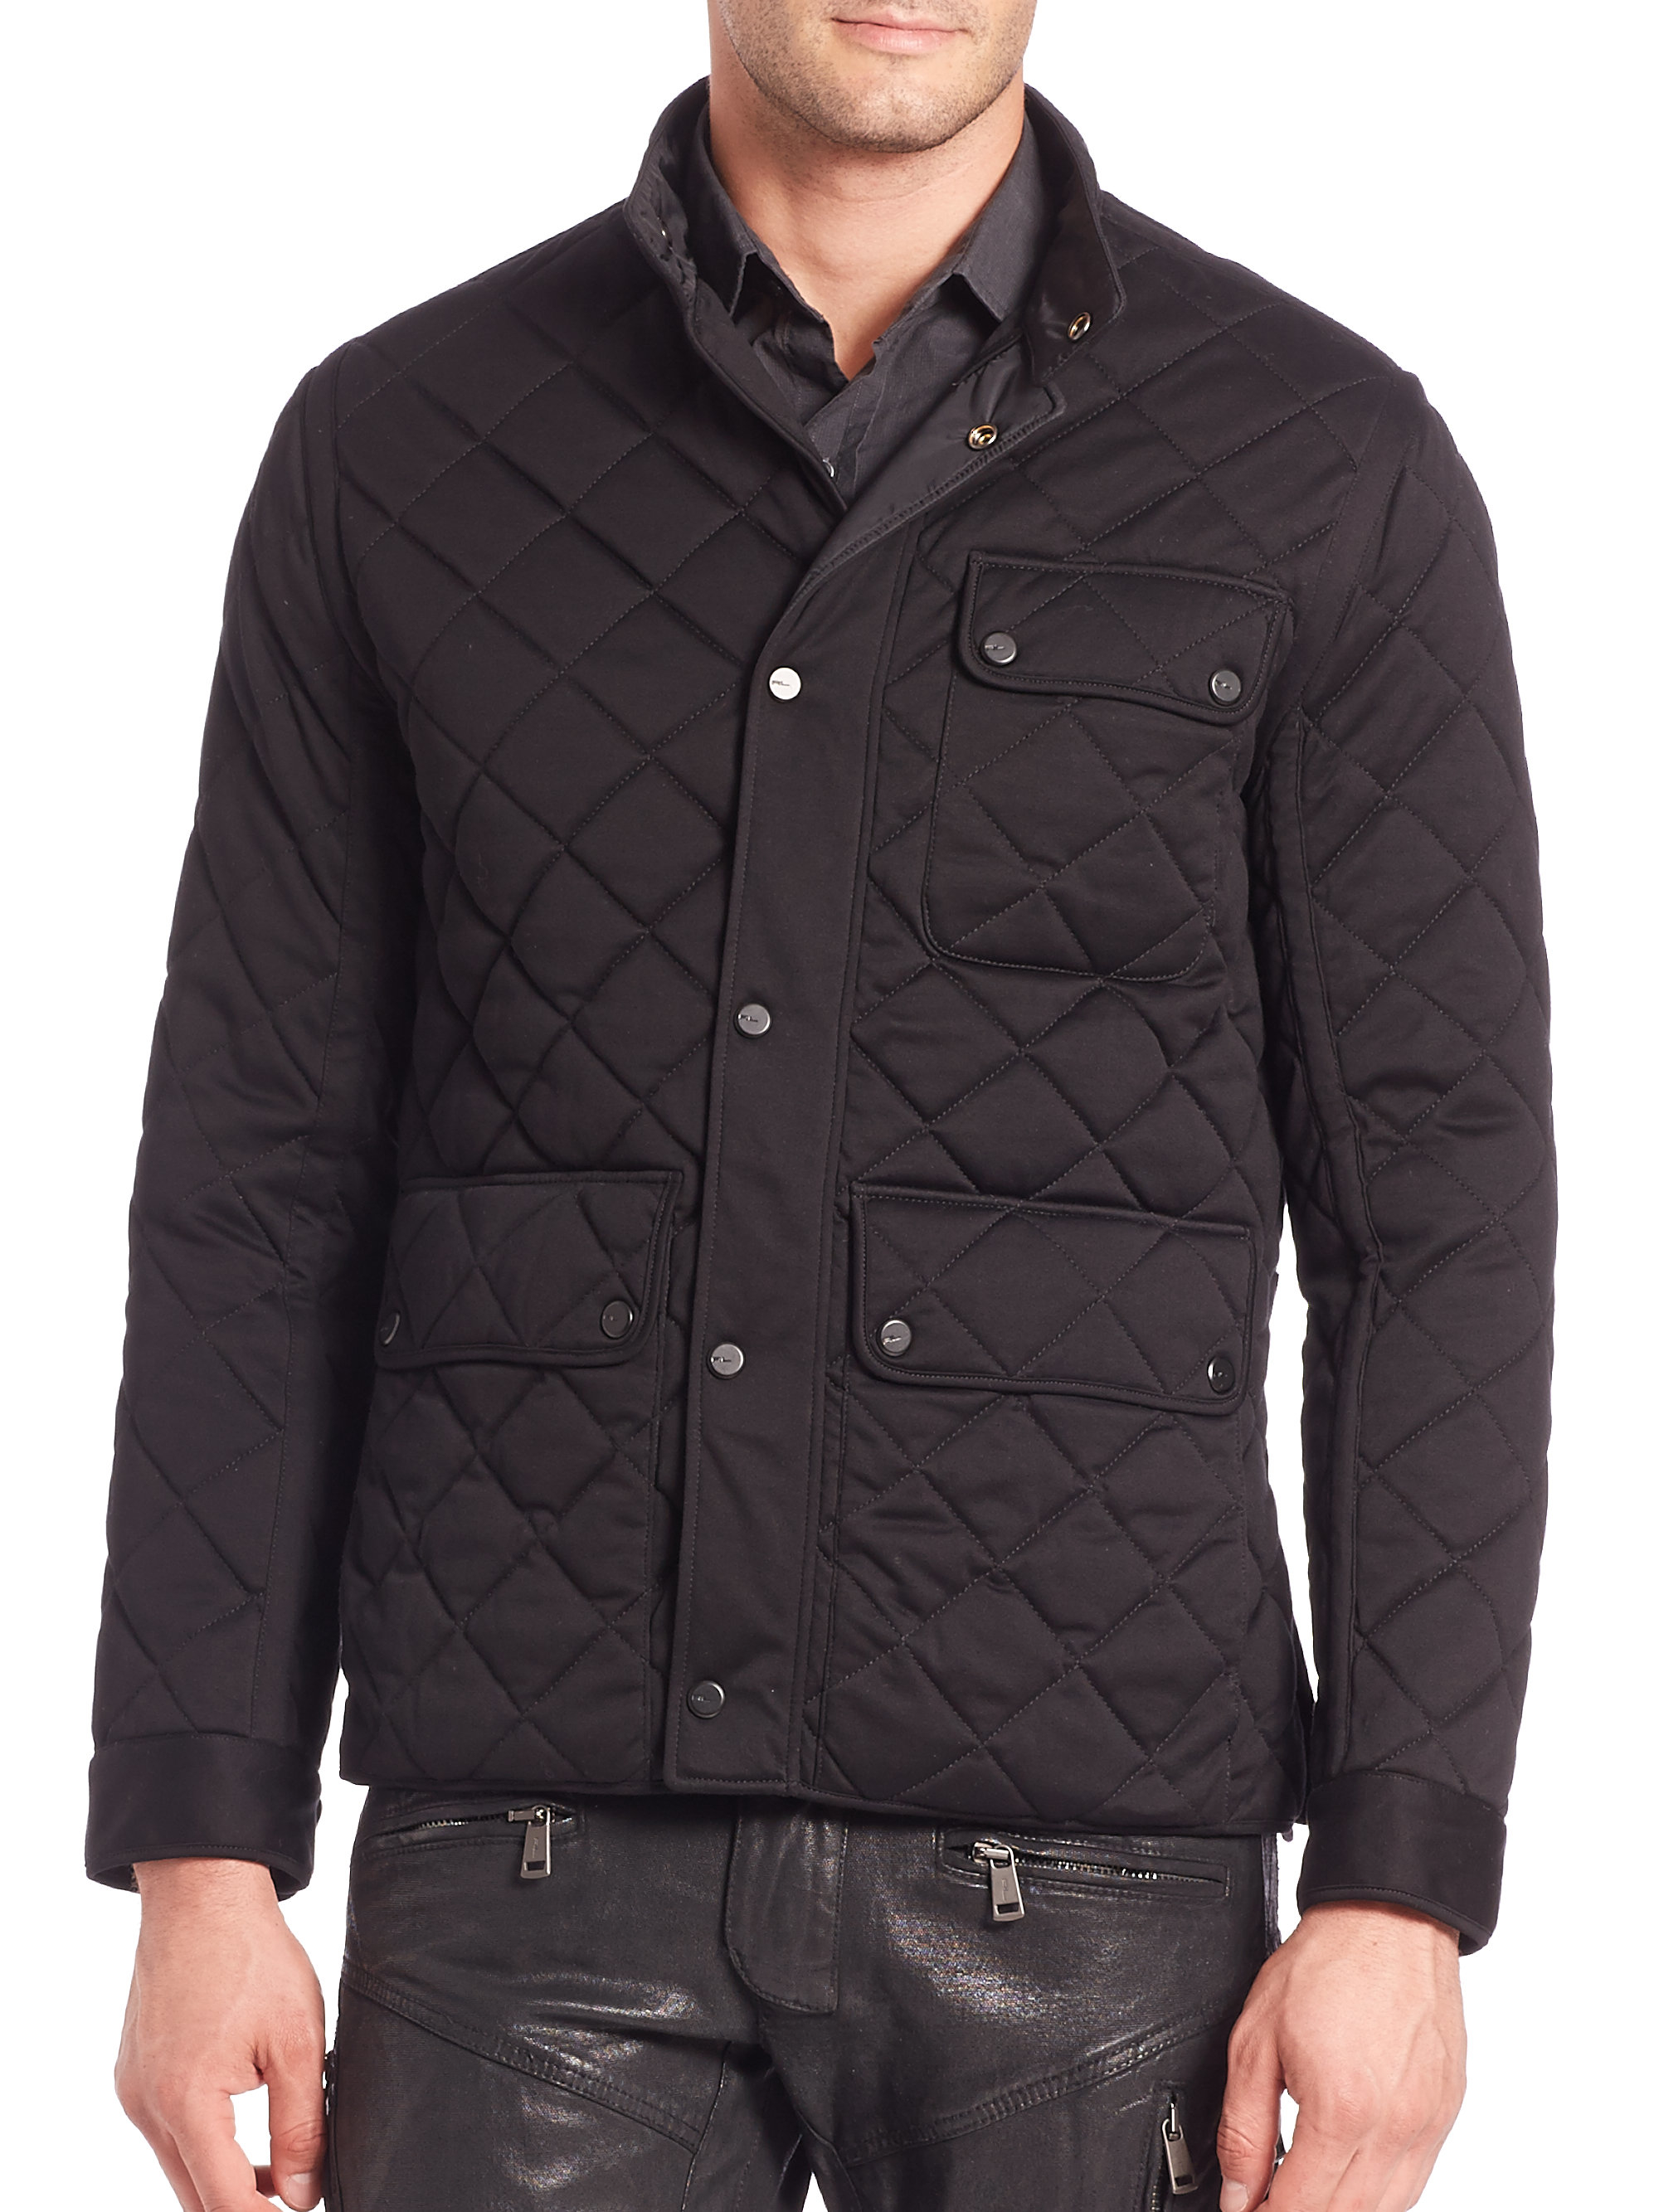 fashion jacket collection shows quilt spring vogue mens quilted ralph menswear lauren